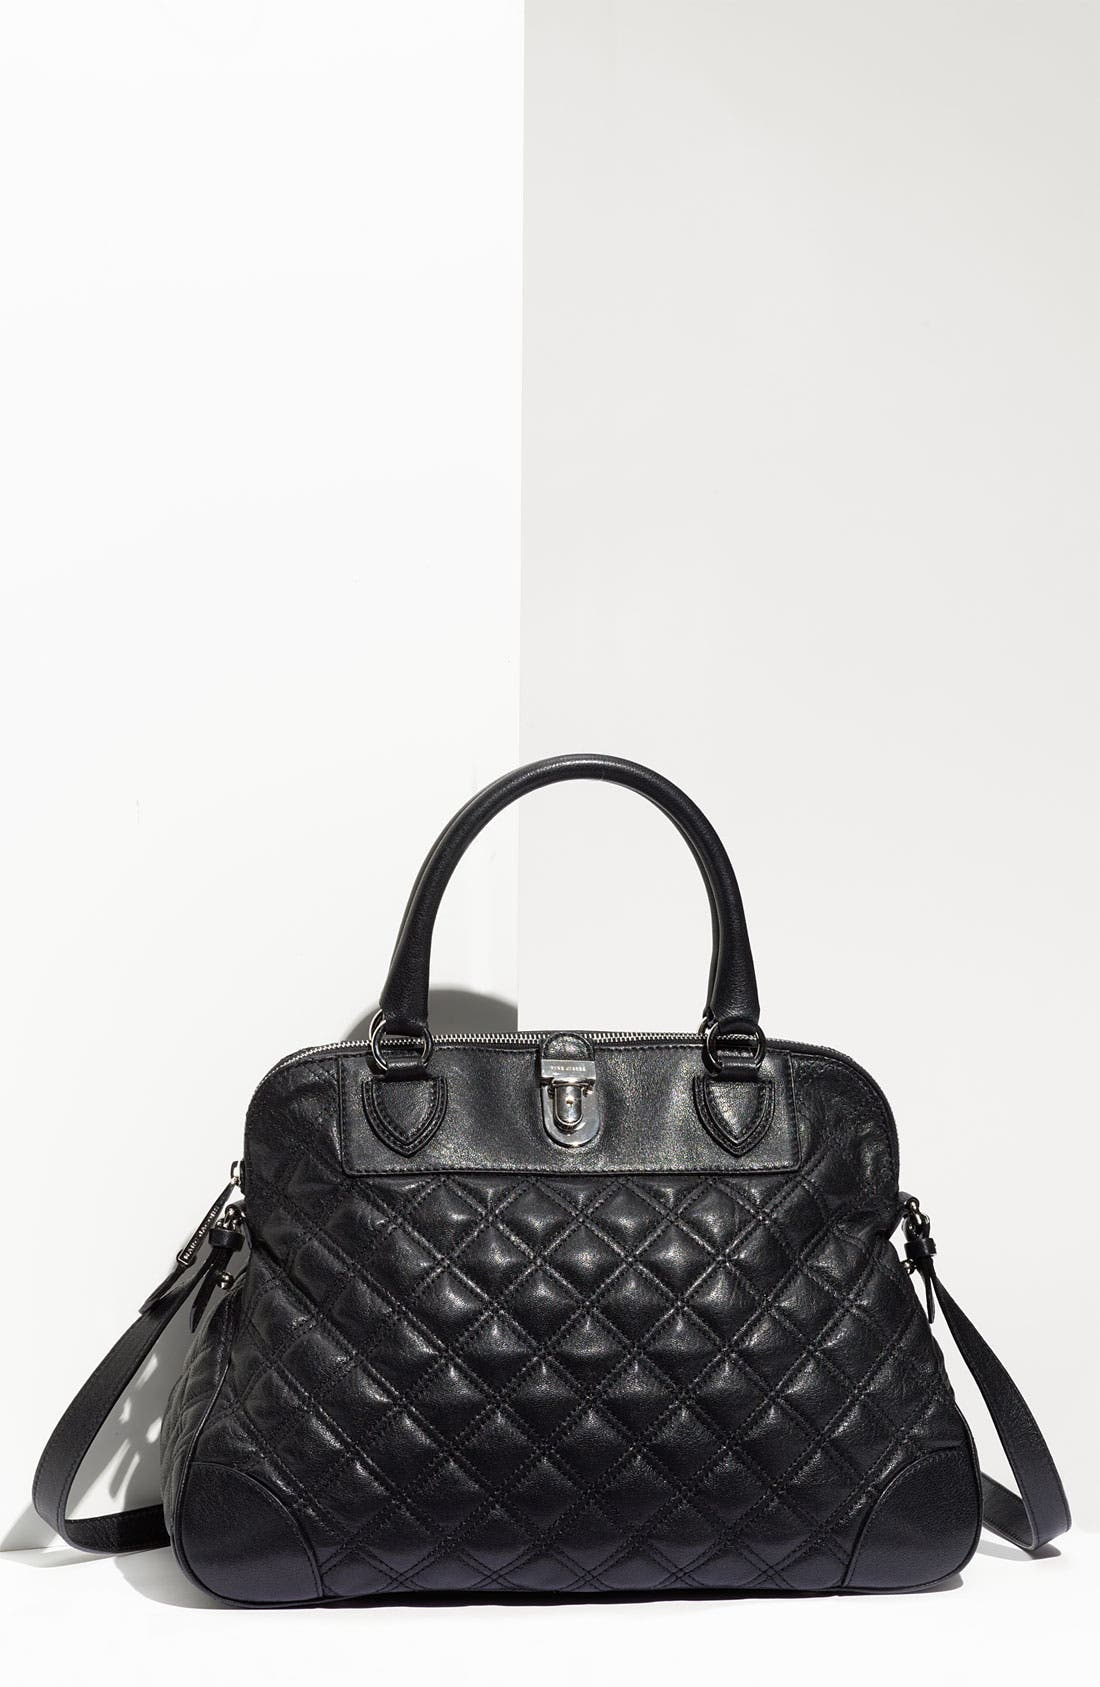 Main Image - MARC JACOBS 'Quilting Whitney' Lambskin Leather Satchel